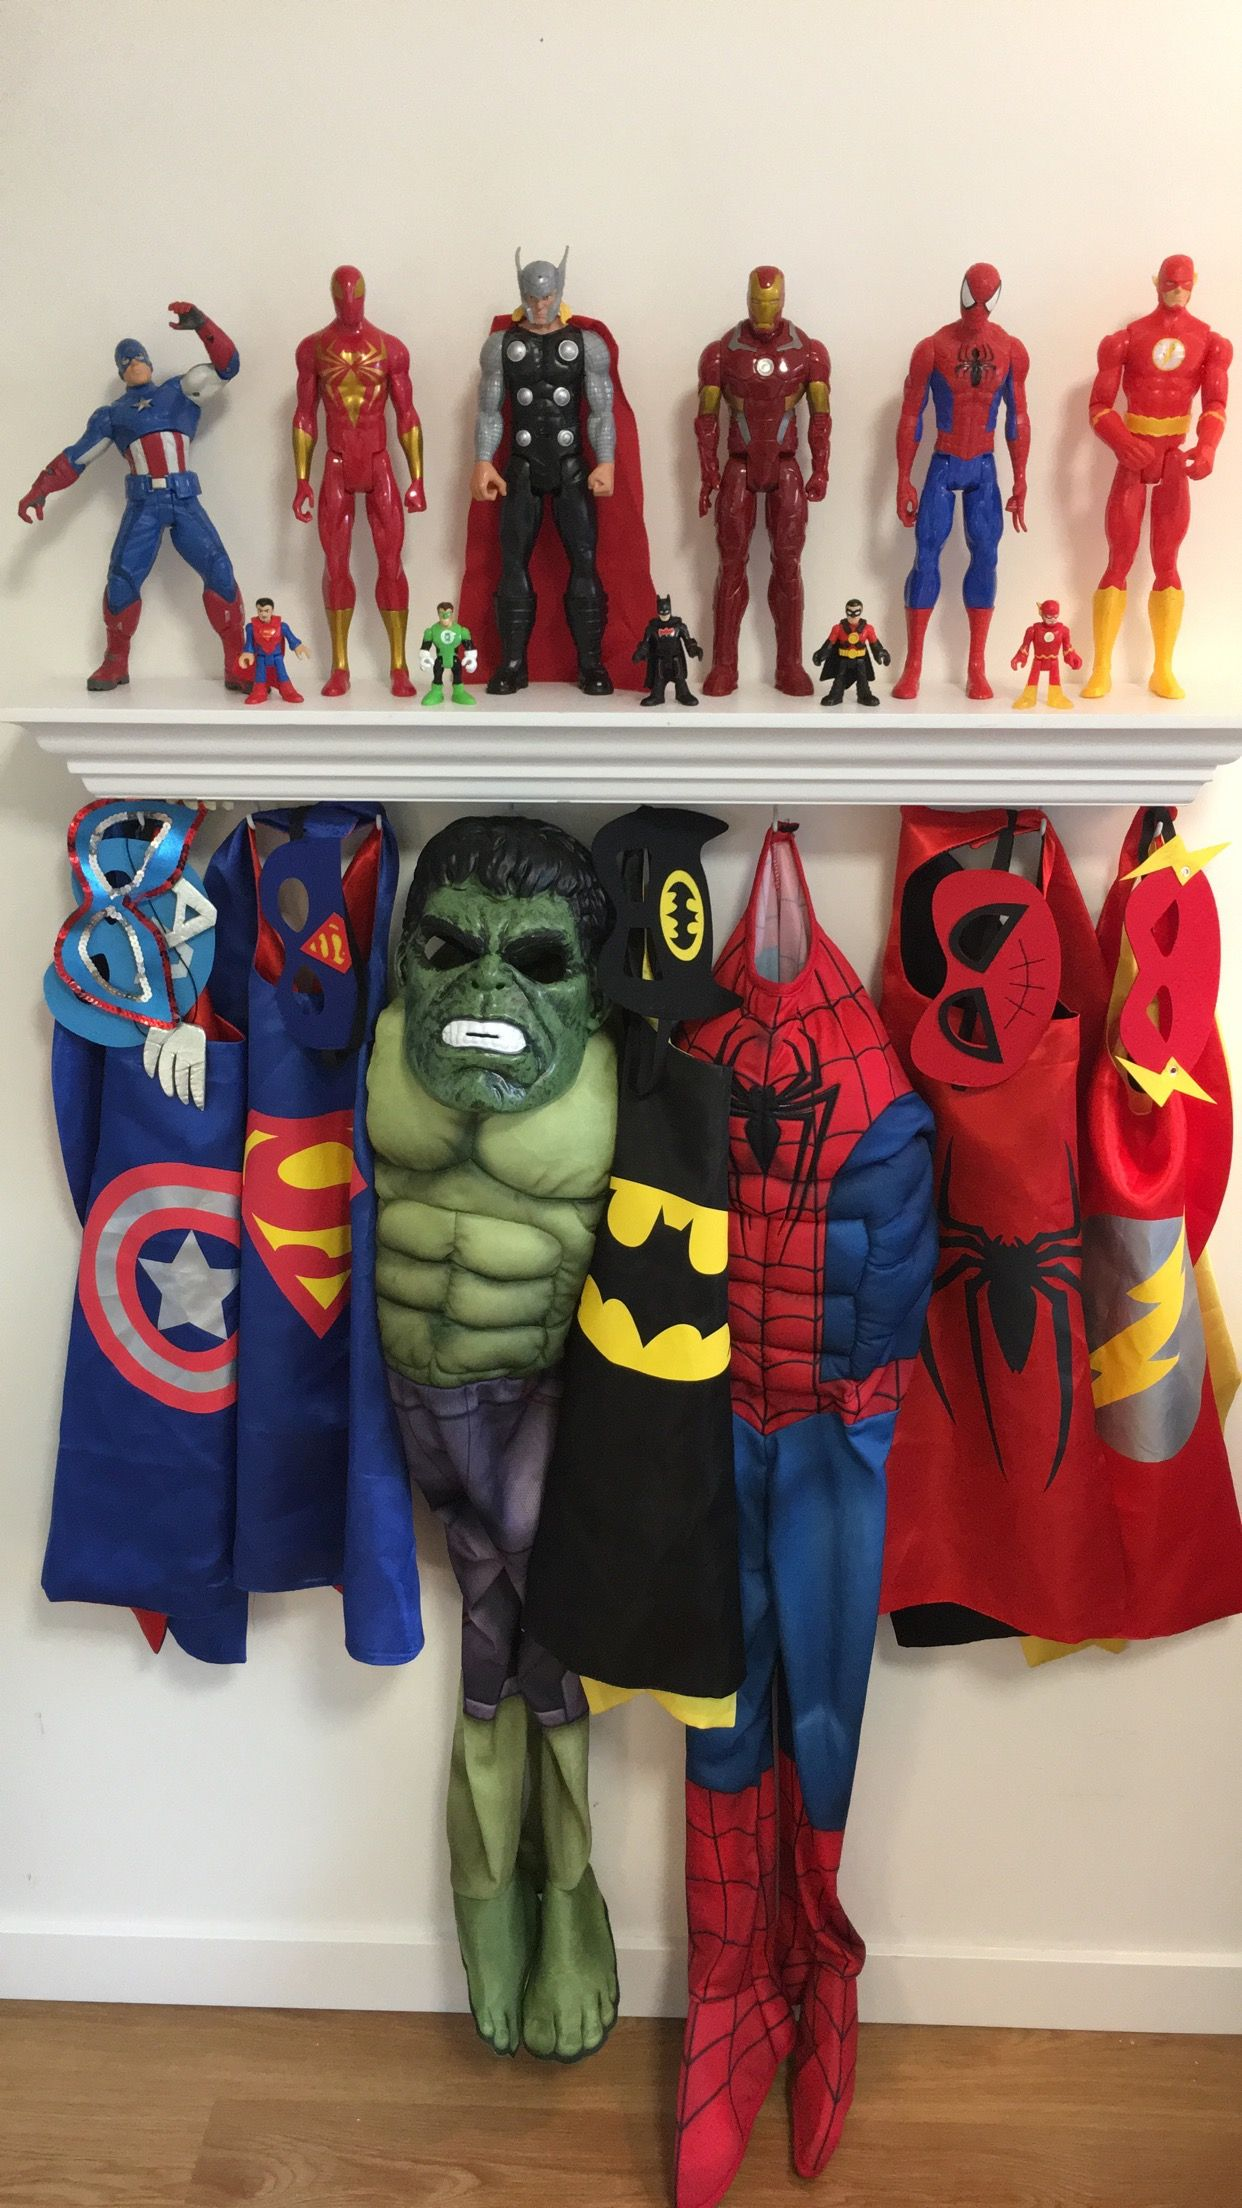 Idee Deco Chambre Garcon Super Heros superheroes boys room costumes action figures spider-man